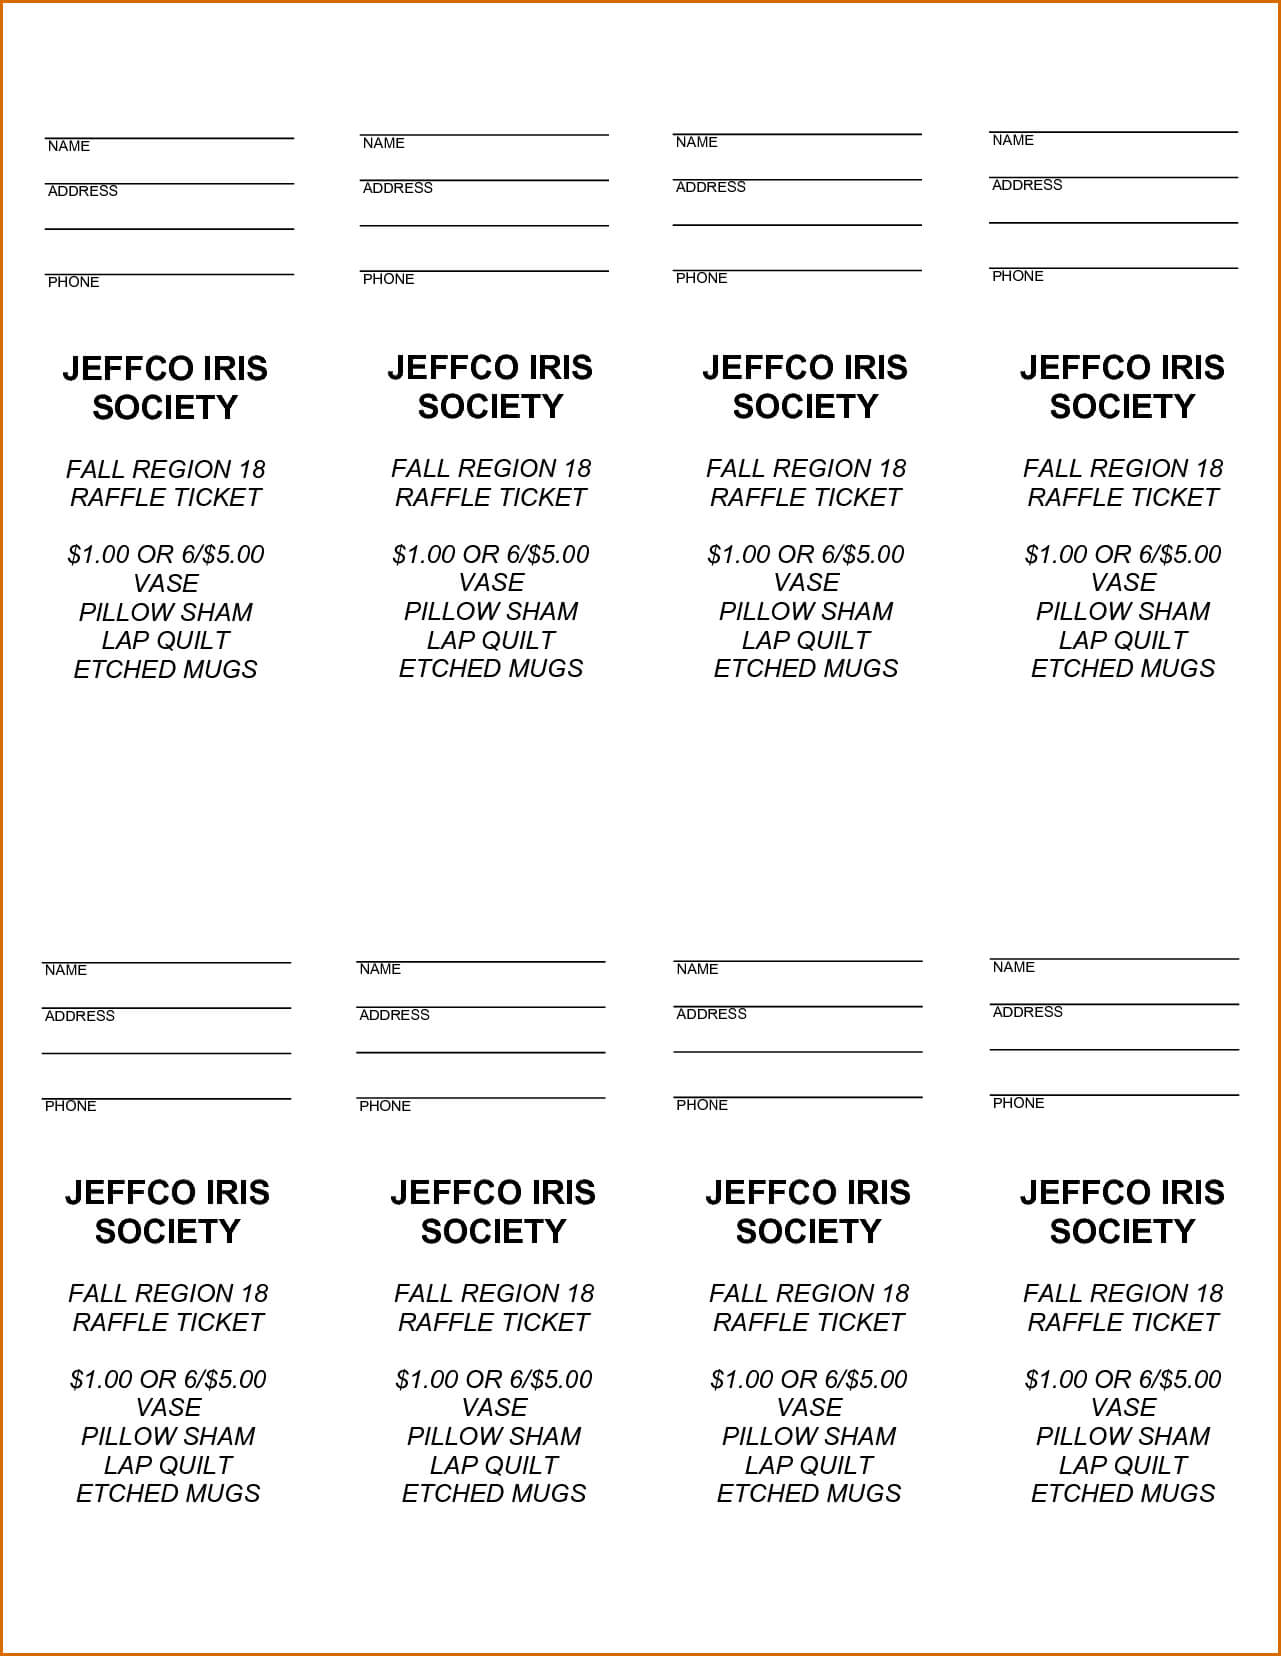 Free Printable Raffle Tickets - Free Printable Raffle Ticket Inside Free Raffle Ticket Template For Word